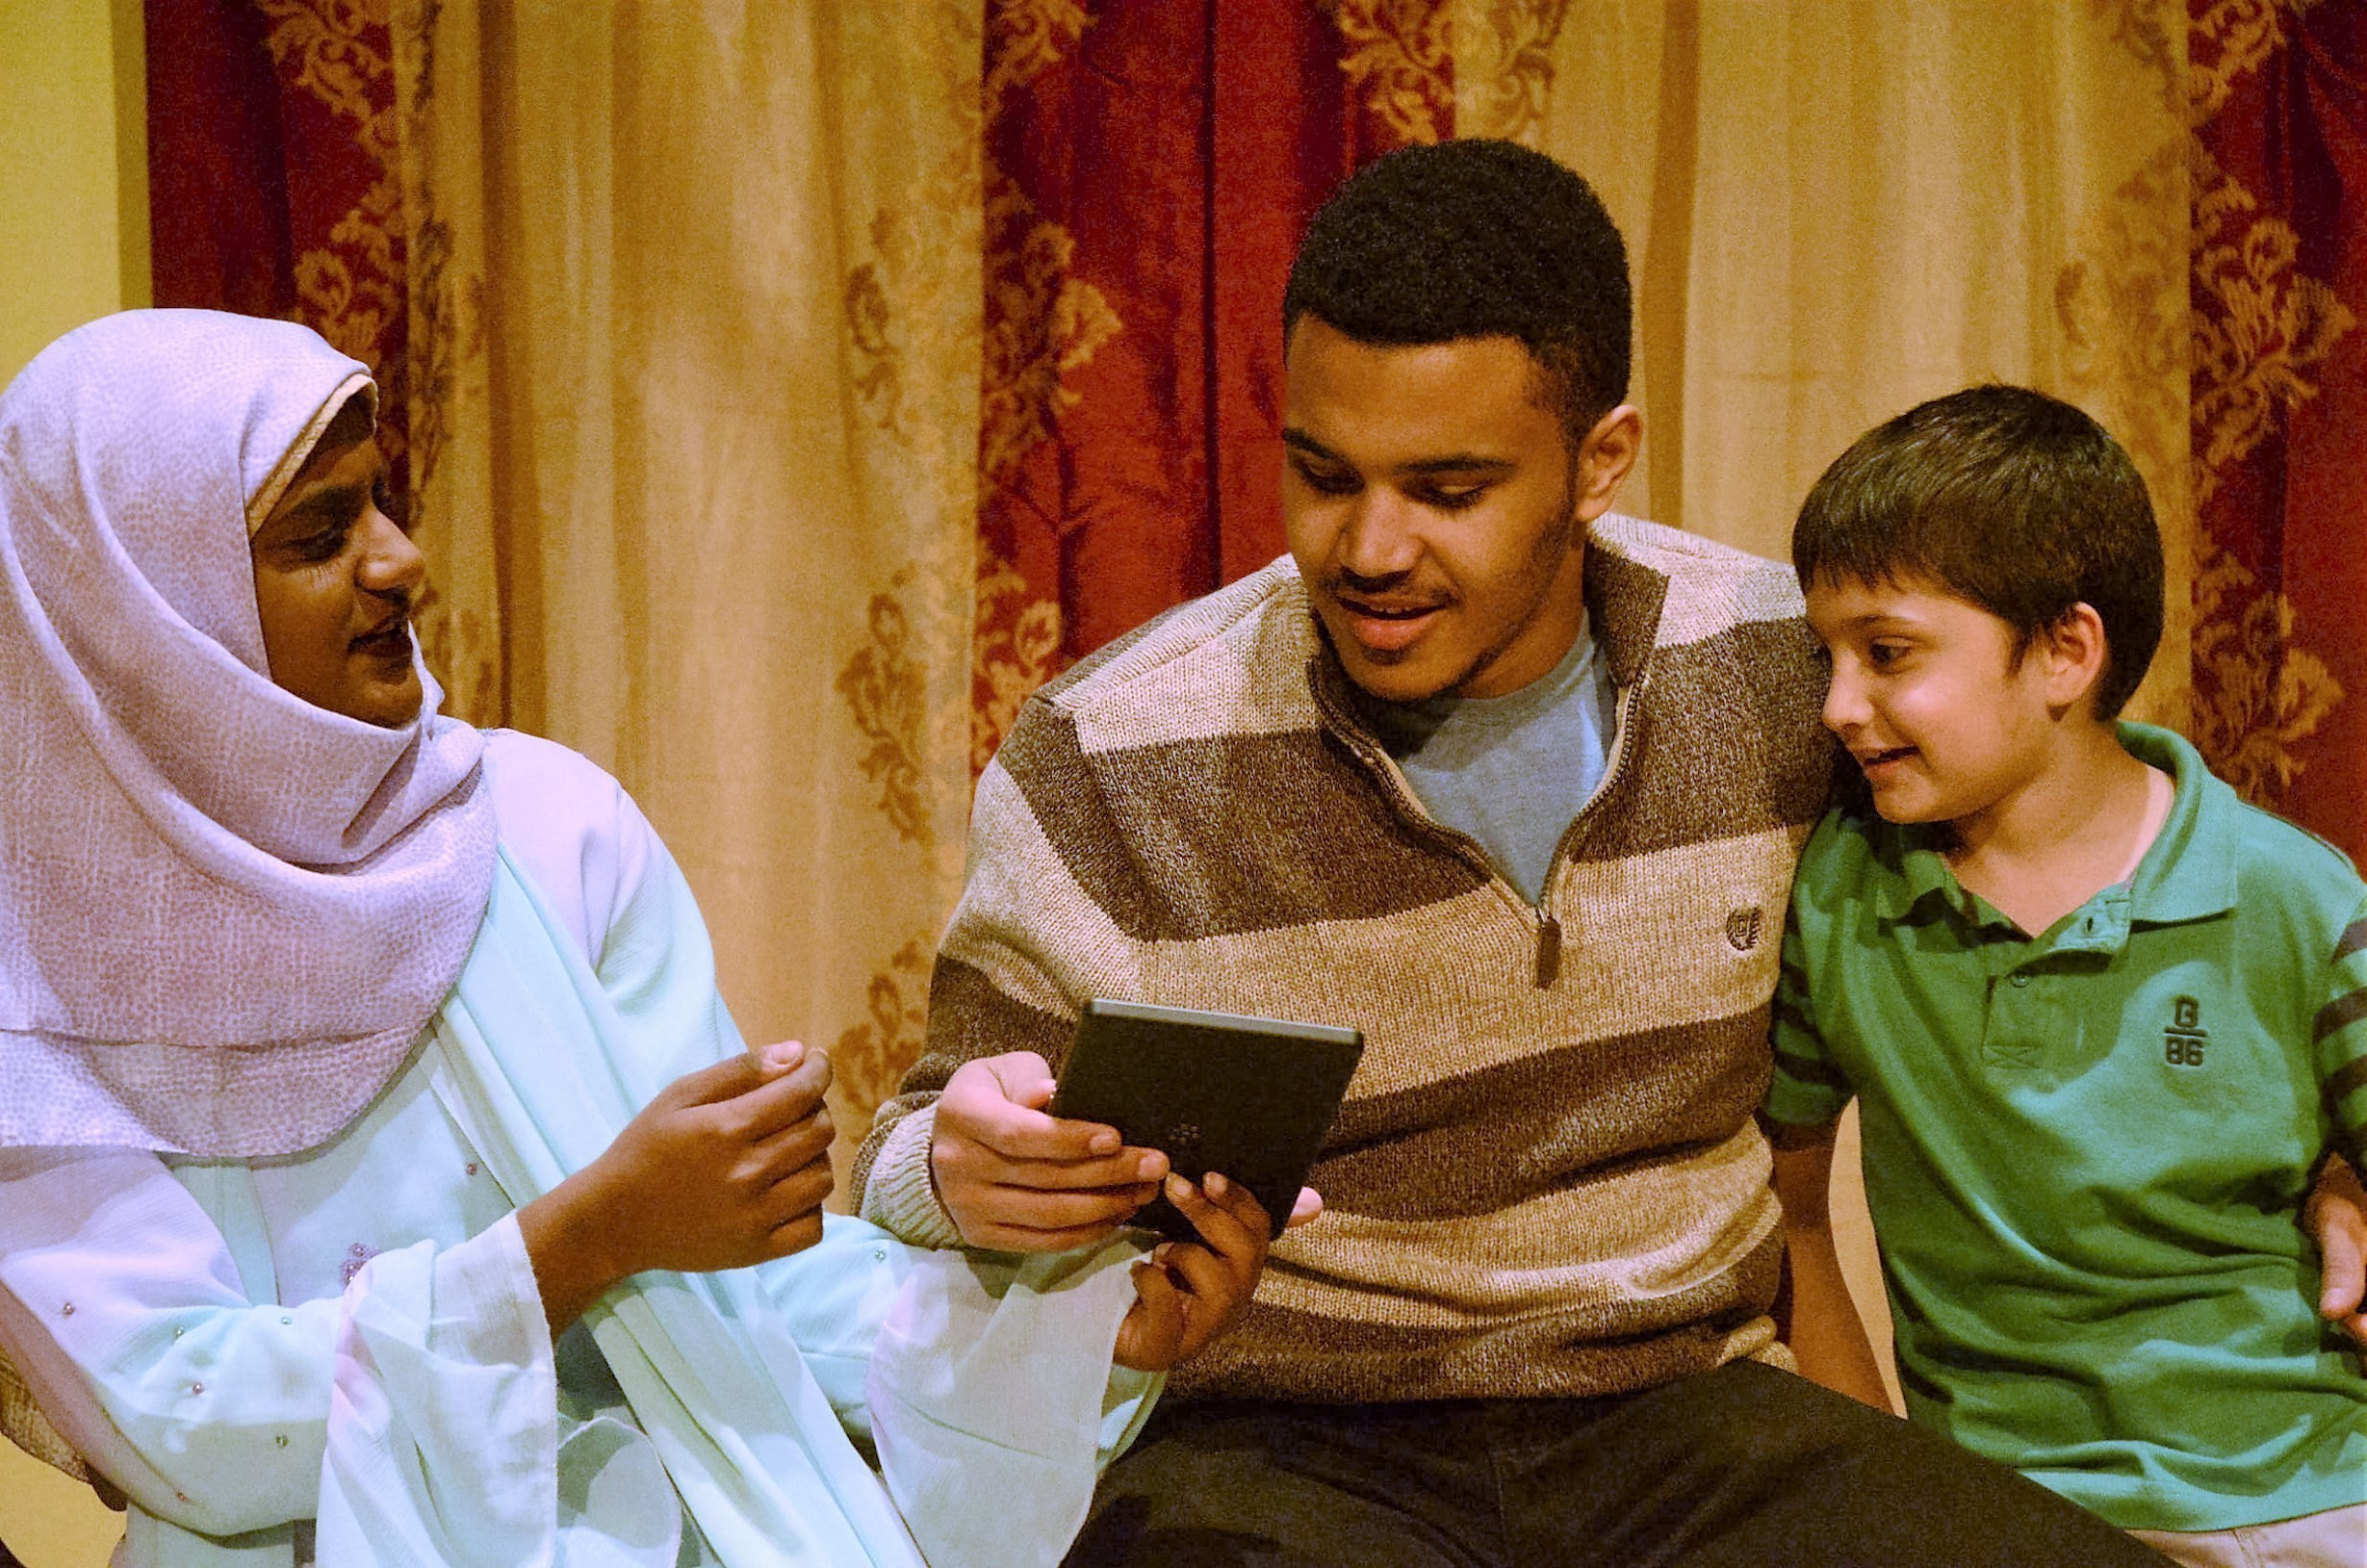 Akber (played by Hawkins) banters with Masuma (played by Mohamed) and her son Khali (played by Chickering). (credit: Theodore Teichman/Assistant Photo Editor)